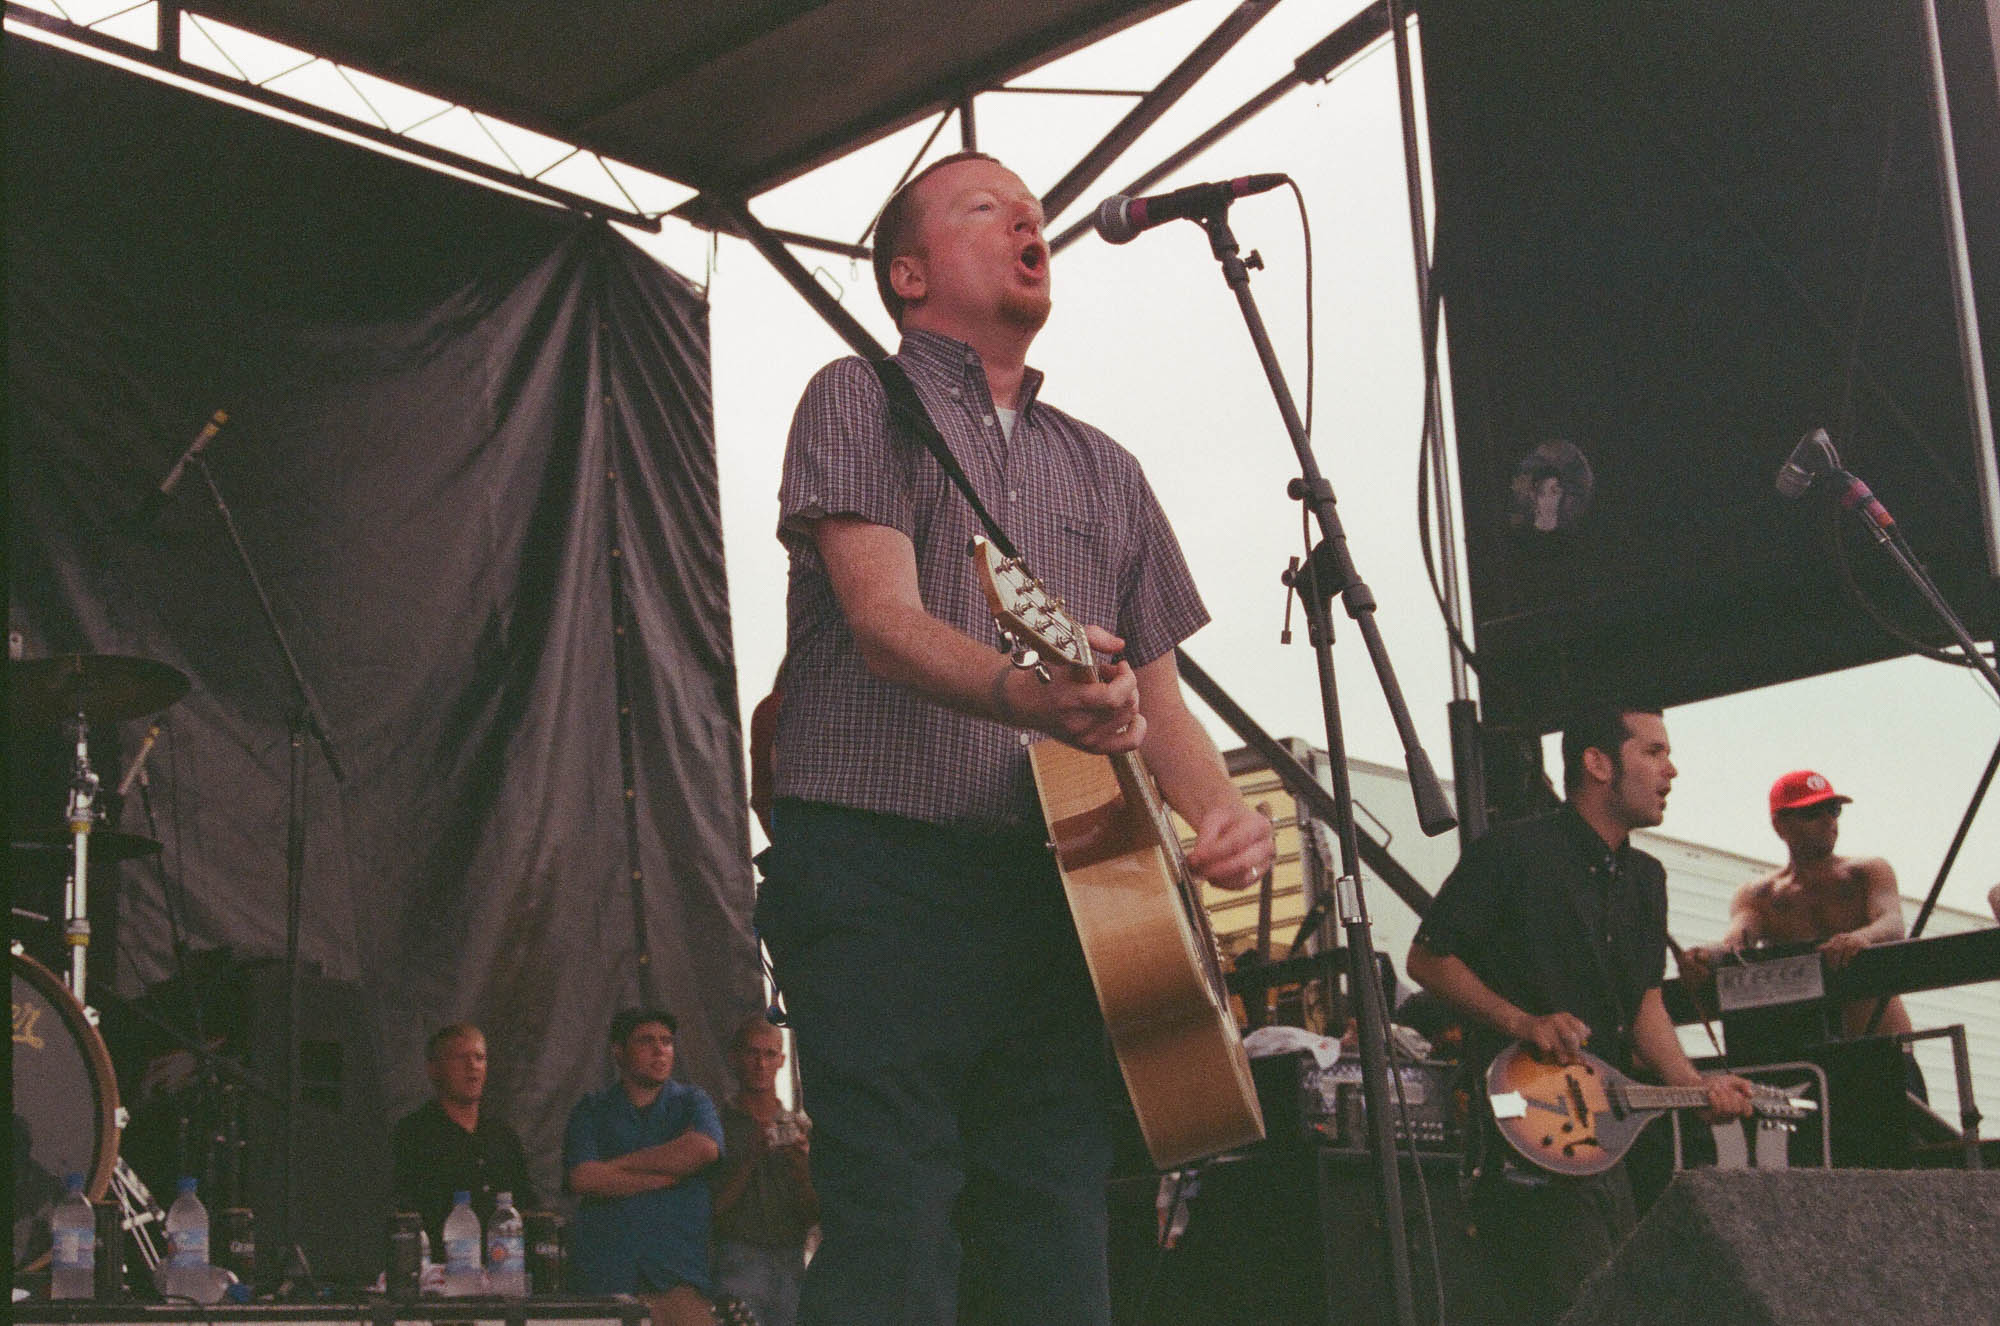 Flogging Molly at Warped Tour 2001